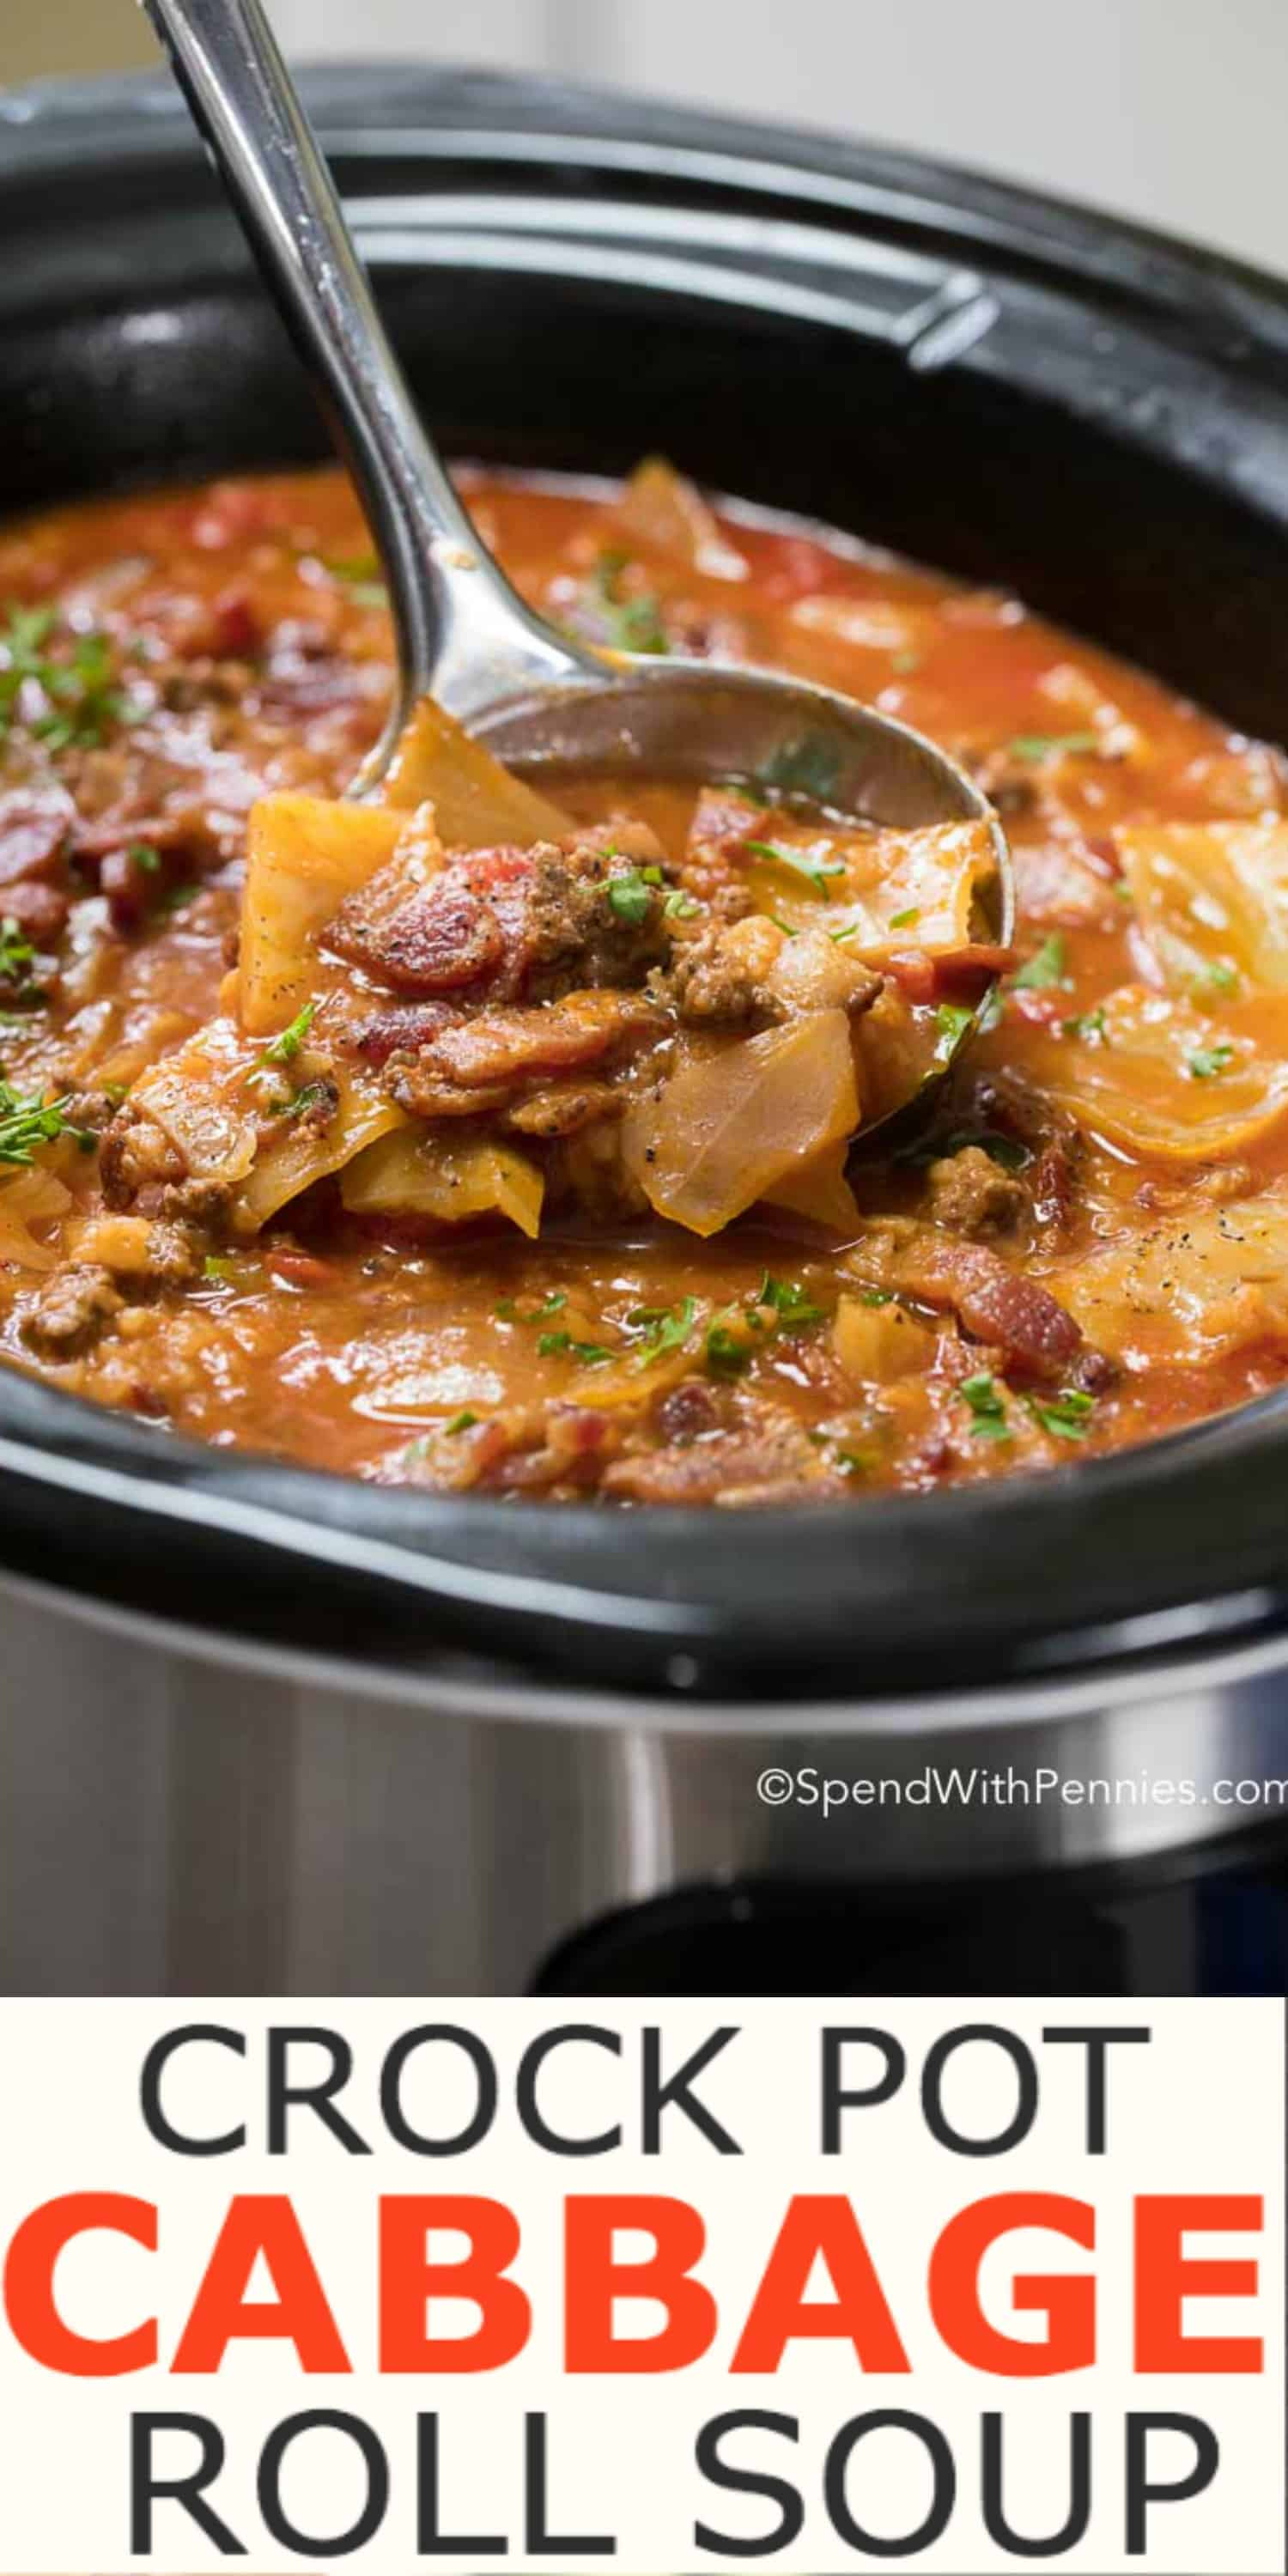 Crock Pot Cabbage Roll Soup in pot